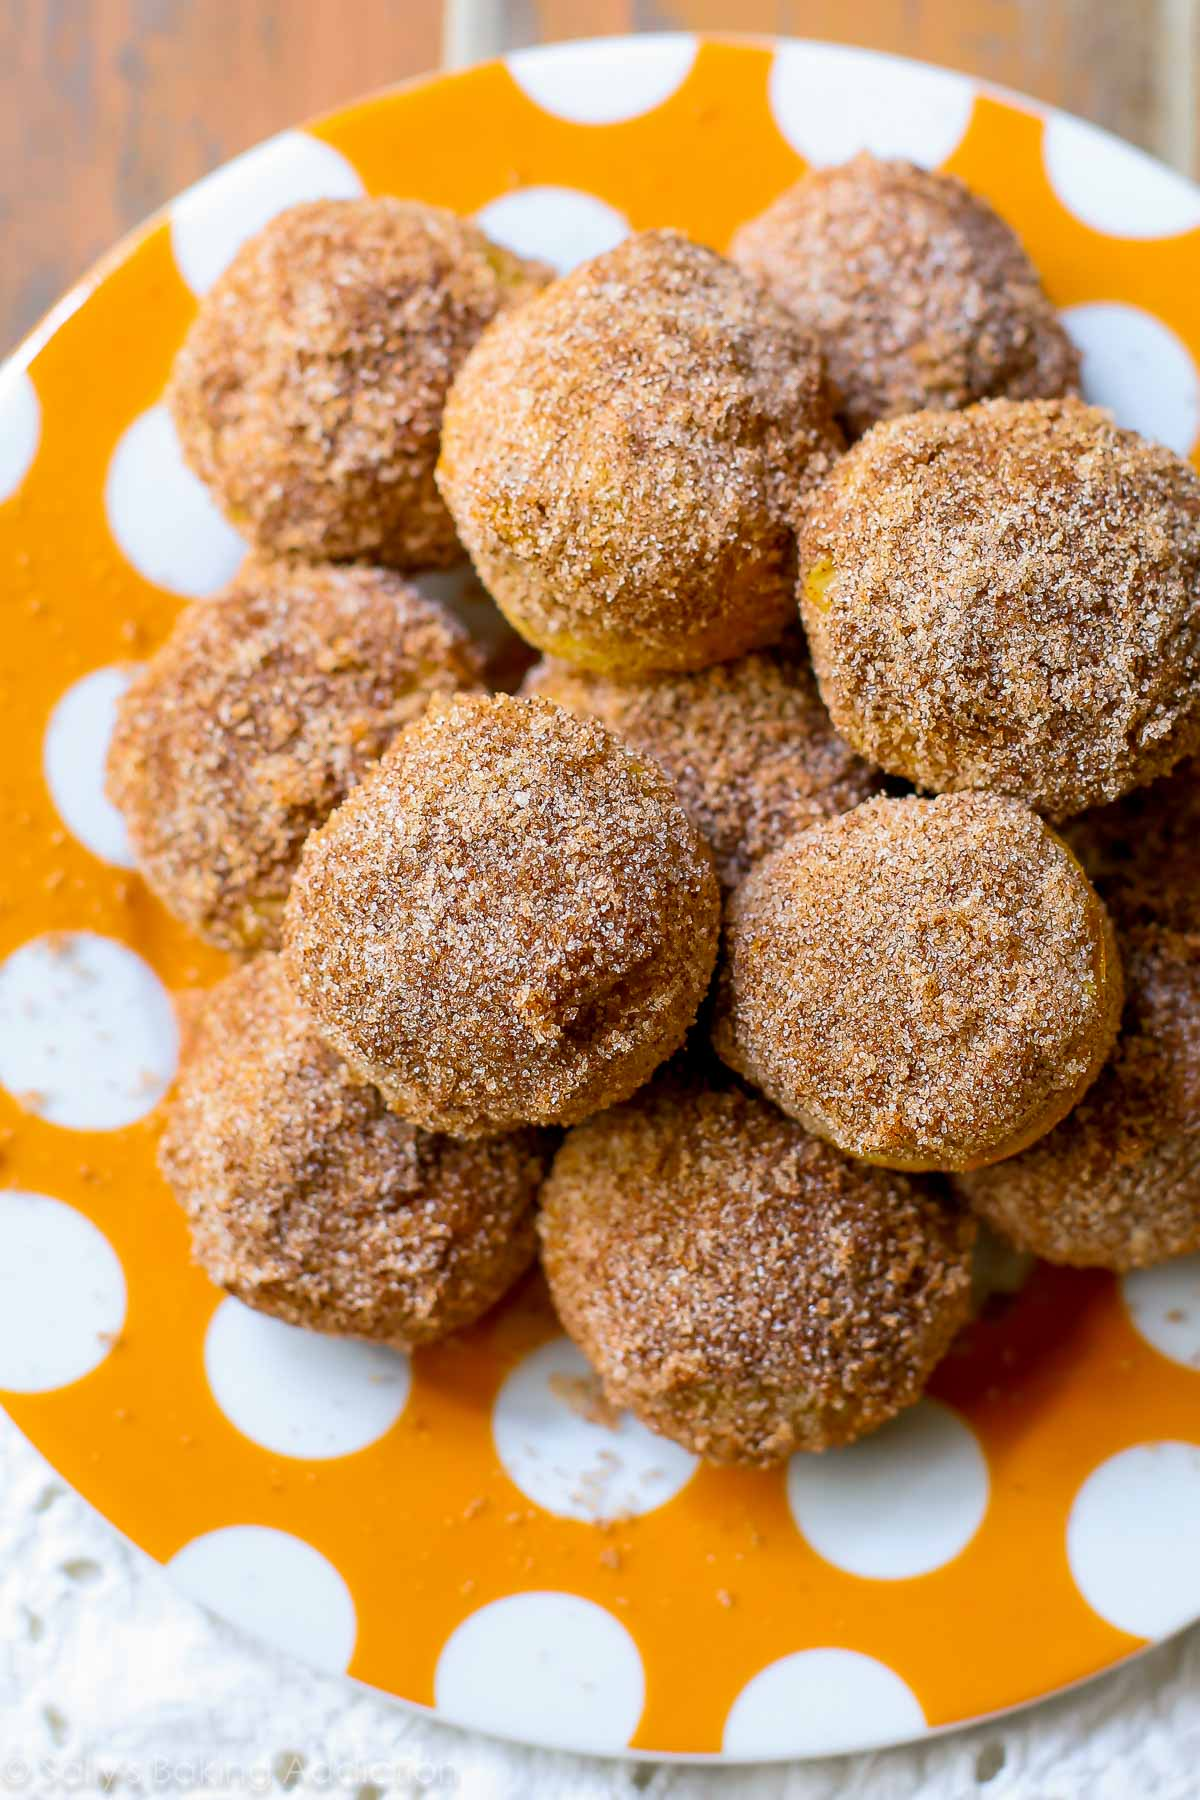 Perfectly little pumpkin muffins coated with cinnamon sugar. They taste like your favorite pumpkin muffins from the bakery! sallysbakingaddiction.com